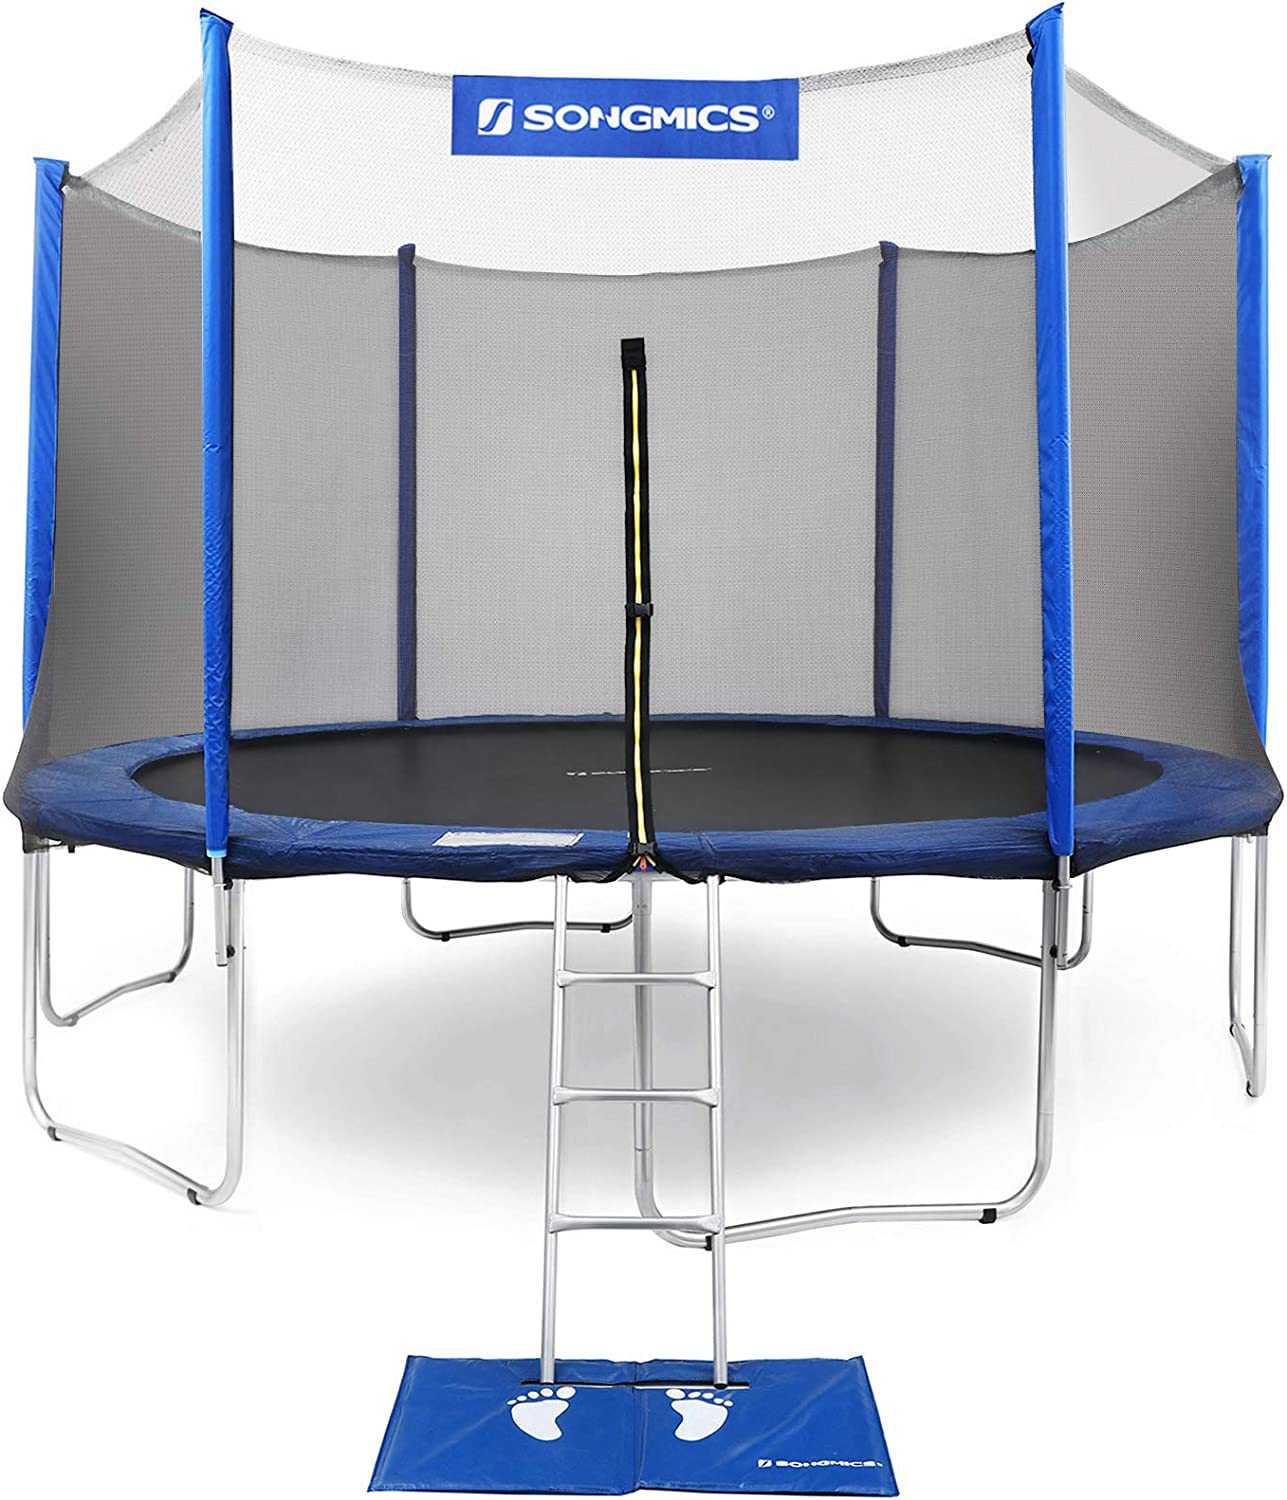 SONGMICS Trampoline with Enclosure Net Pad Safety Ladder Jump Free shipping 2021